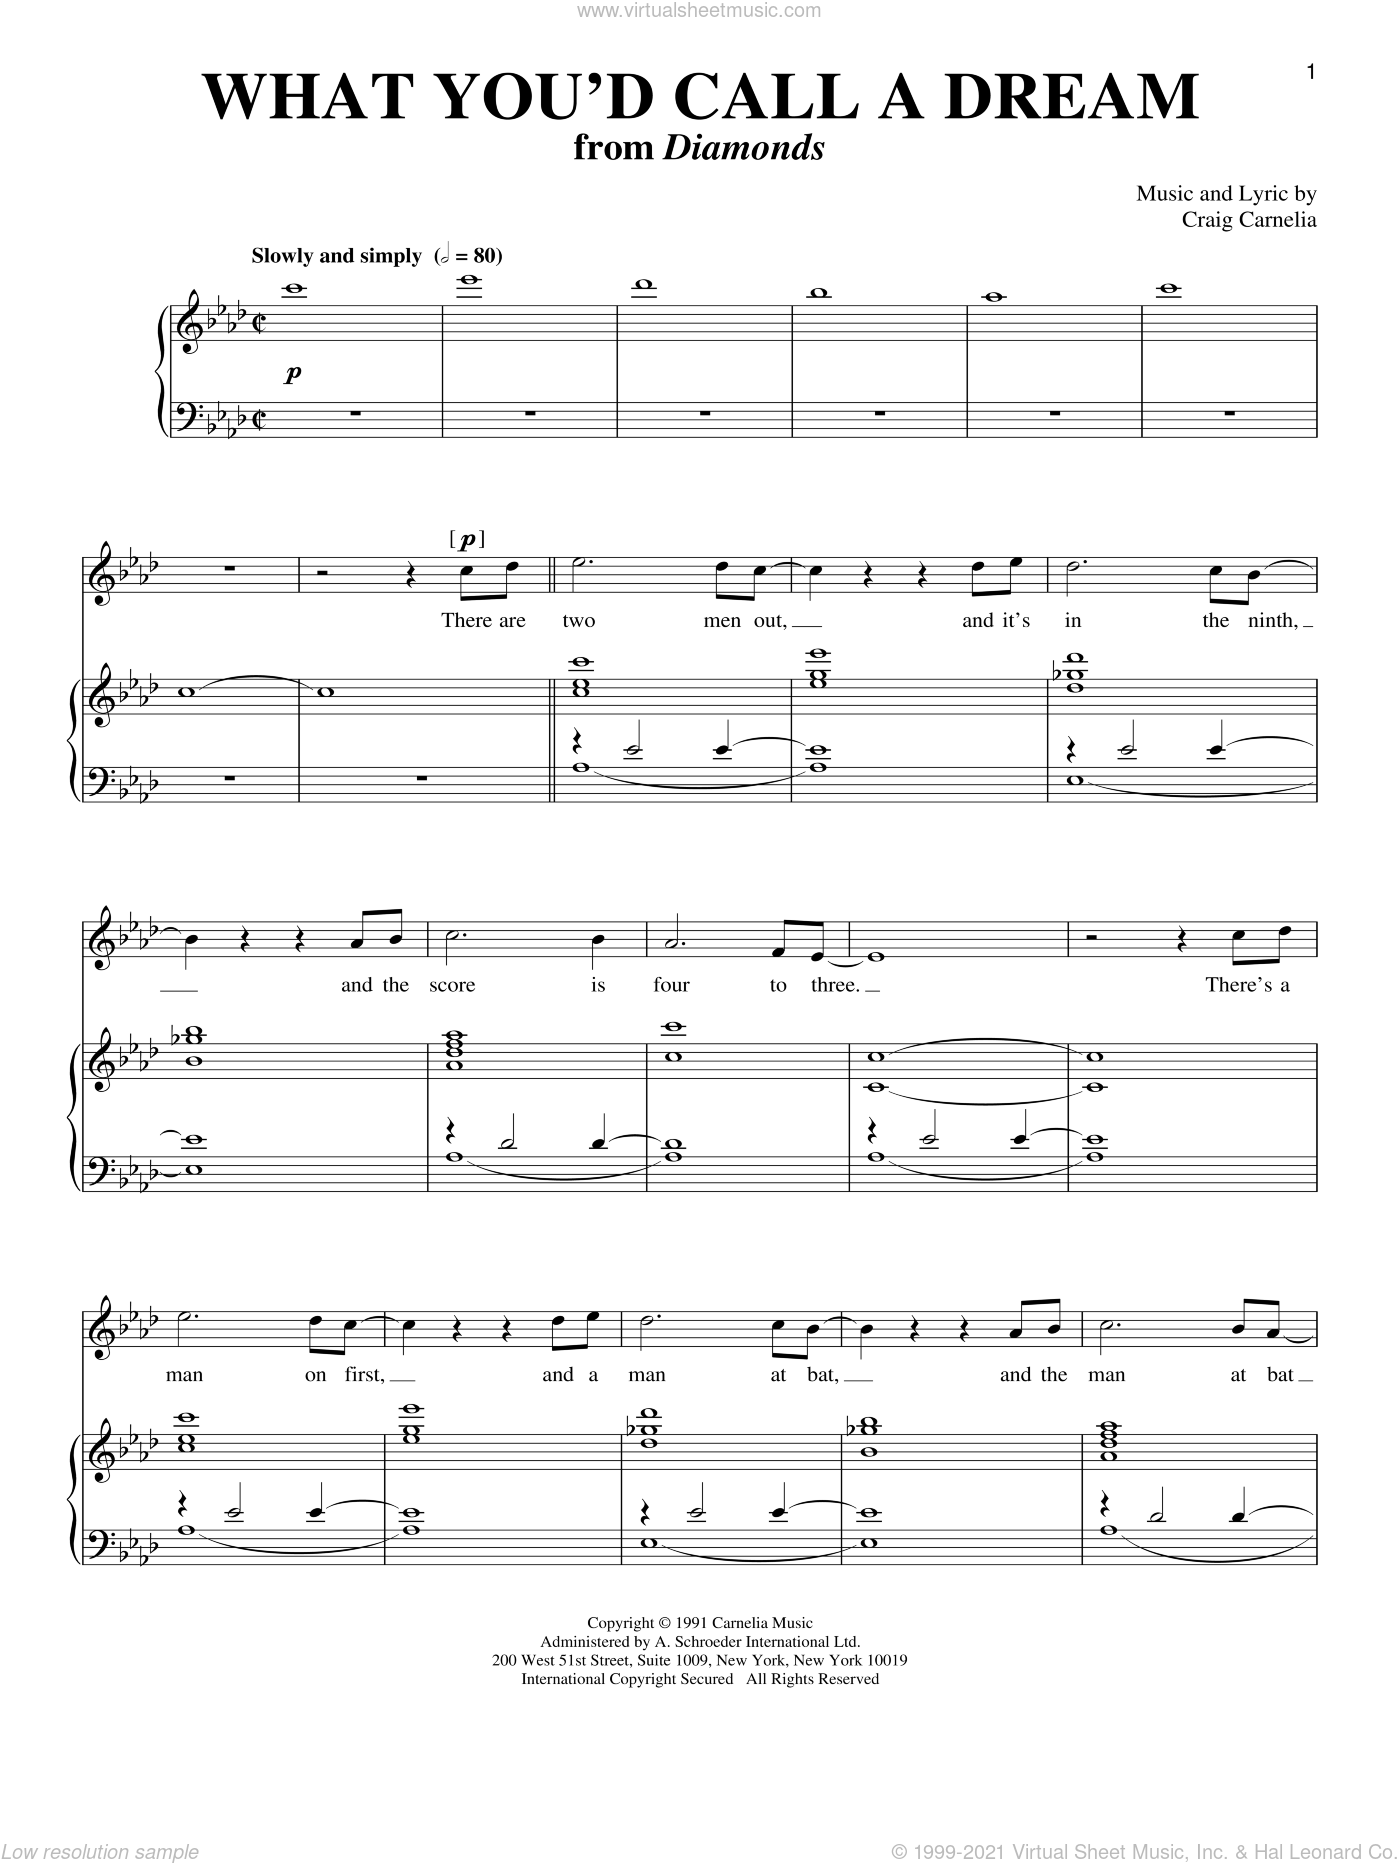 What You'd Call A Dream sheet music for voice and piano by Craig Carnelia, intermediate skill level